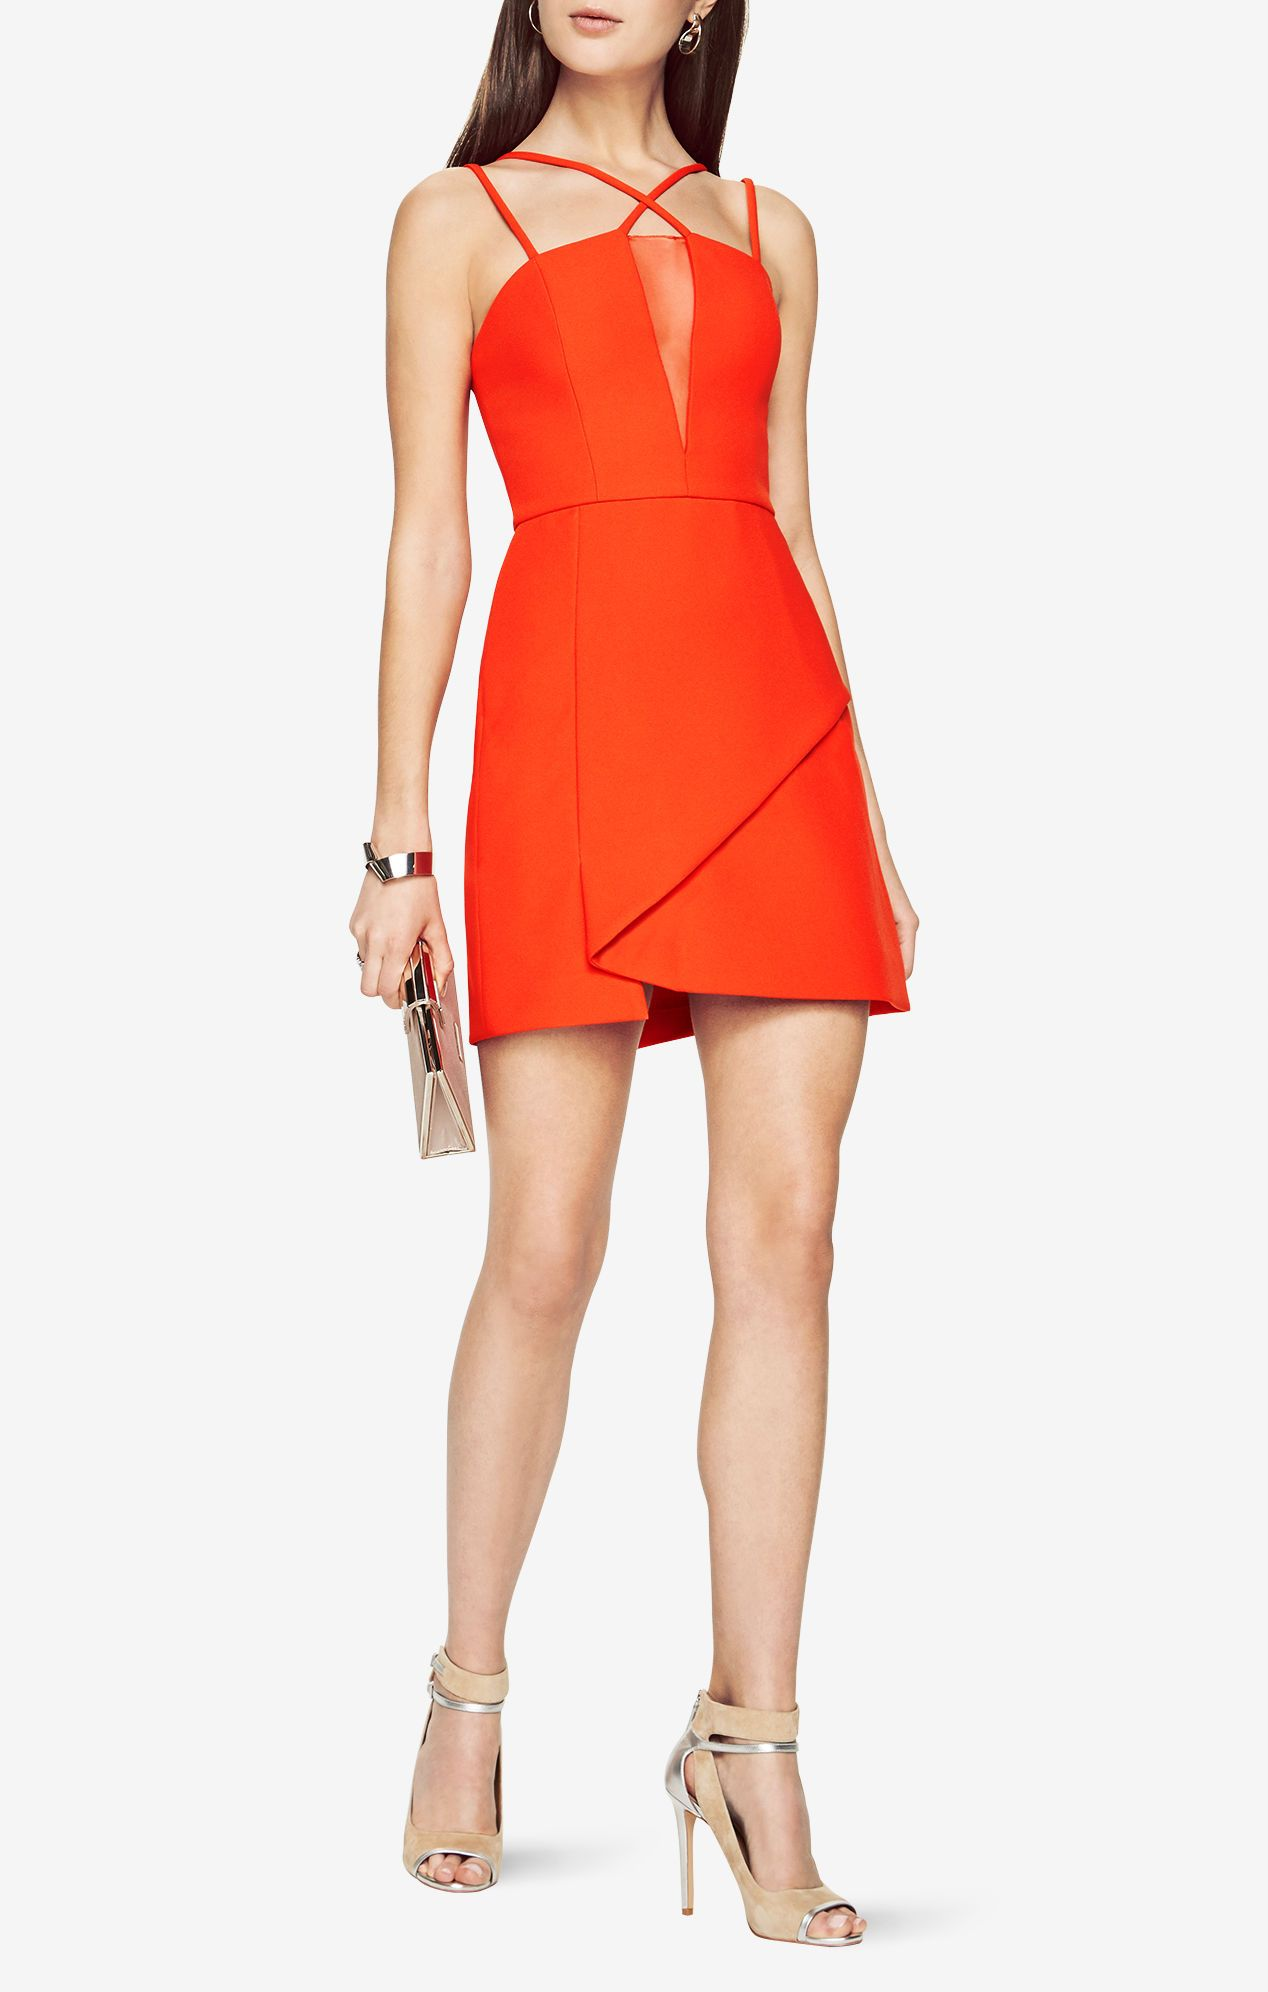 Linzee Cutout Dress | Clothes | Pinterest | Clothes, Clothing and Naked